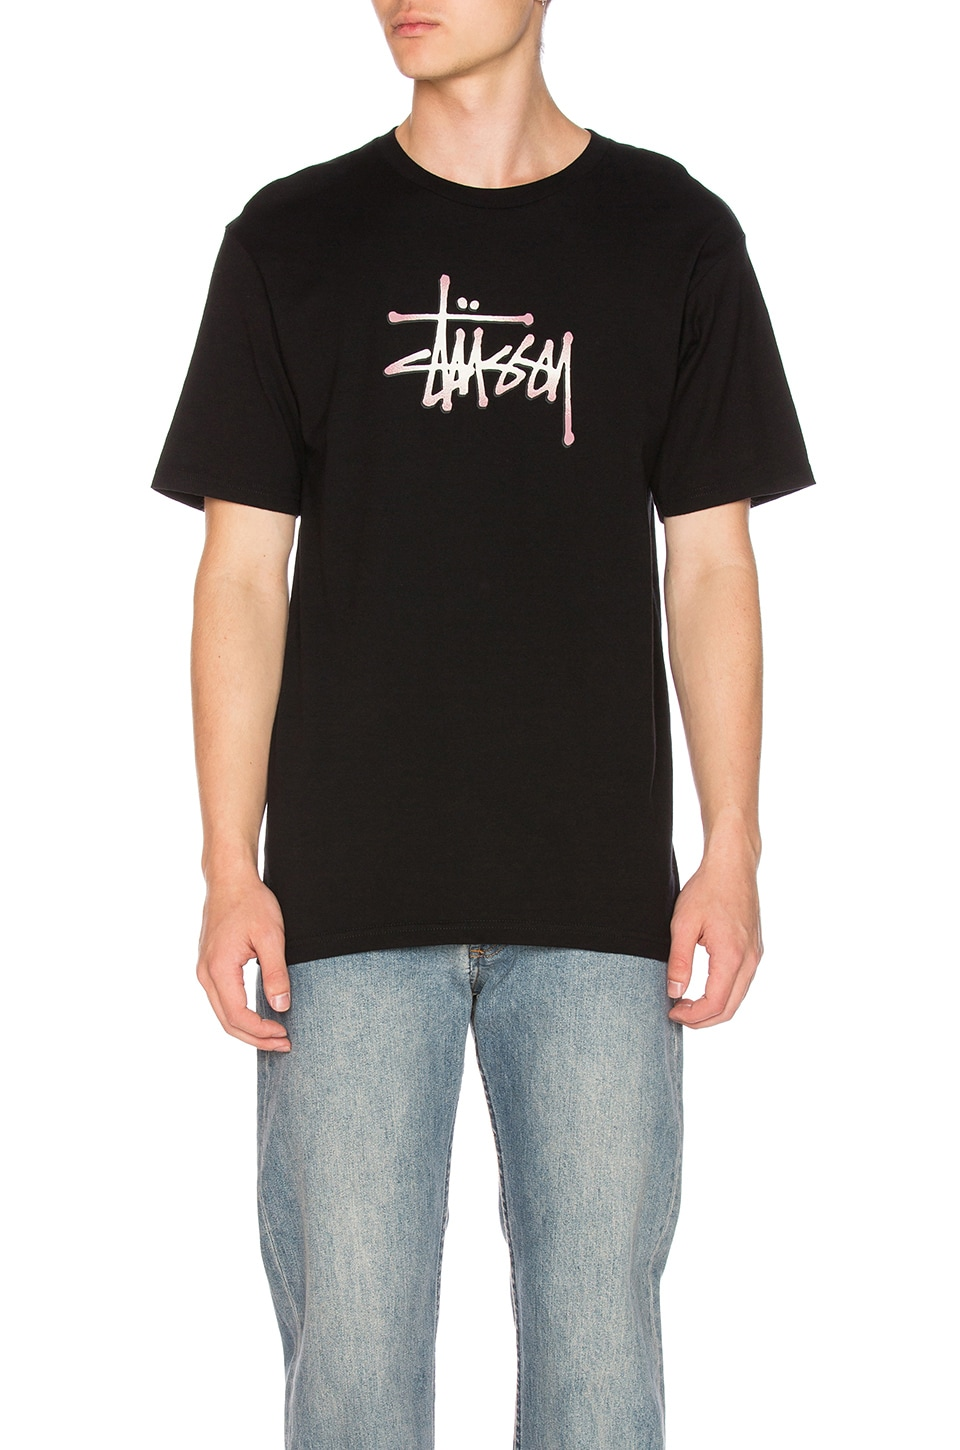 Black t shirt mens - Stipple Stussy Tee